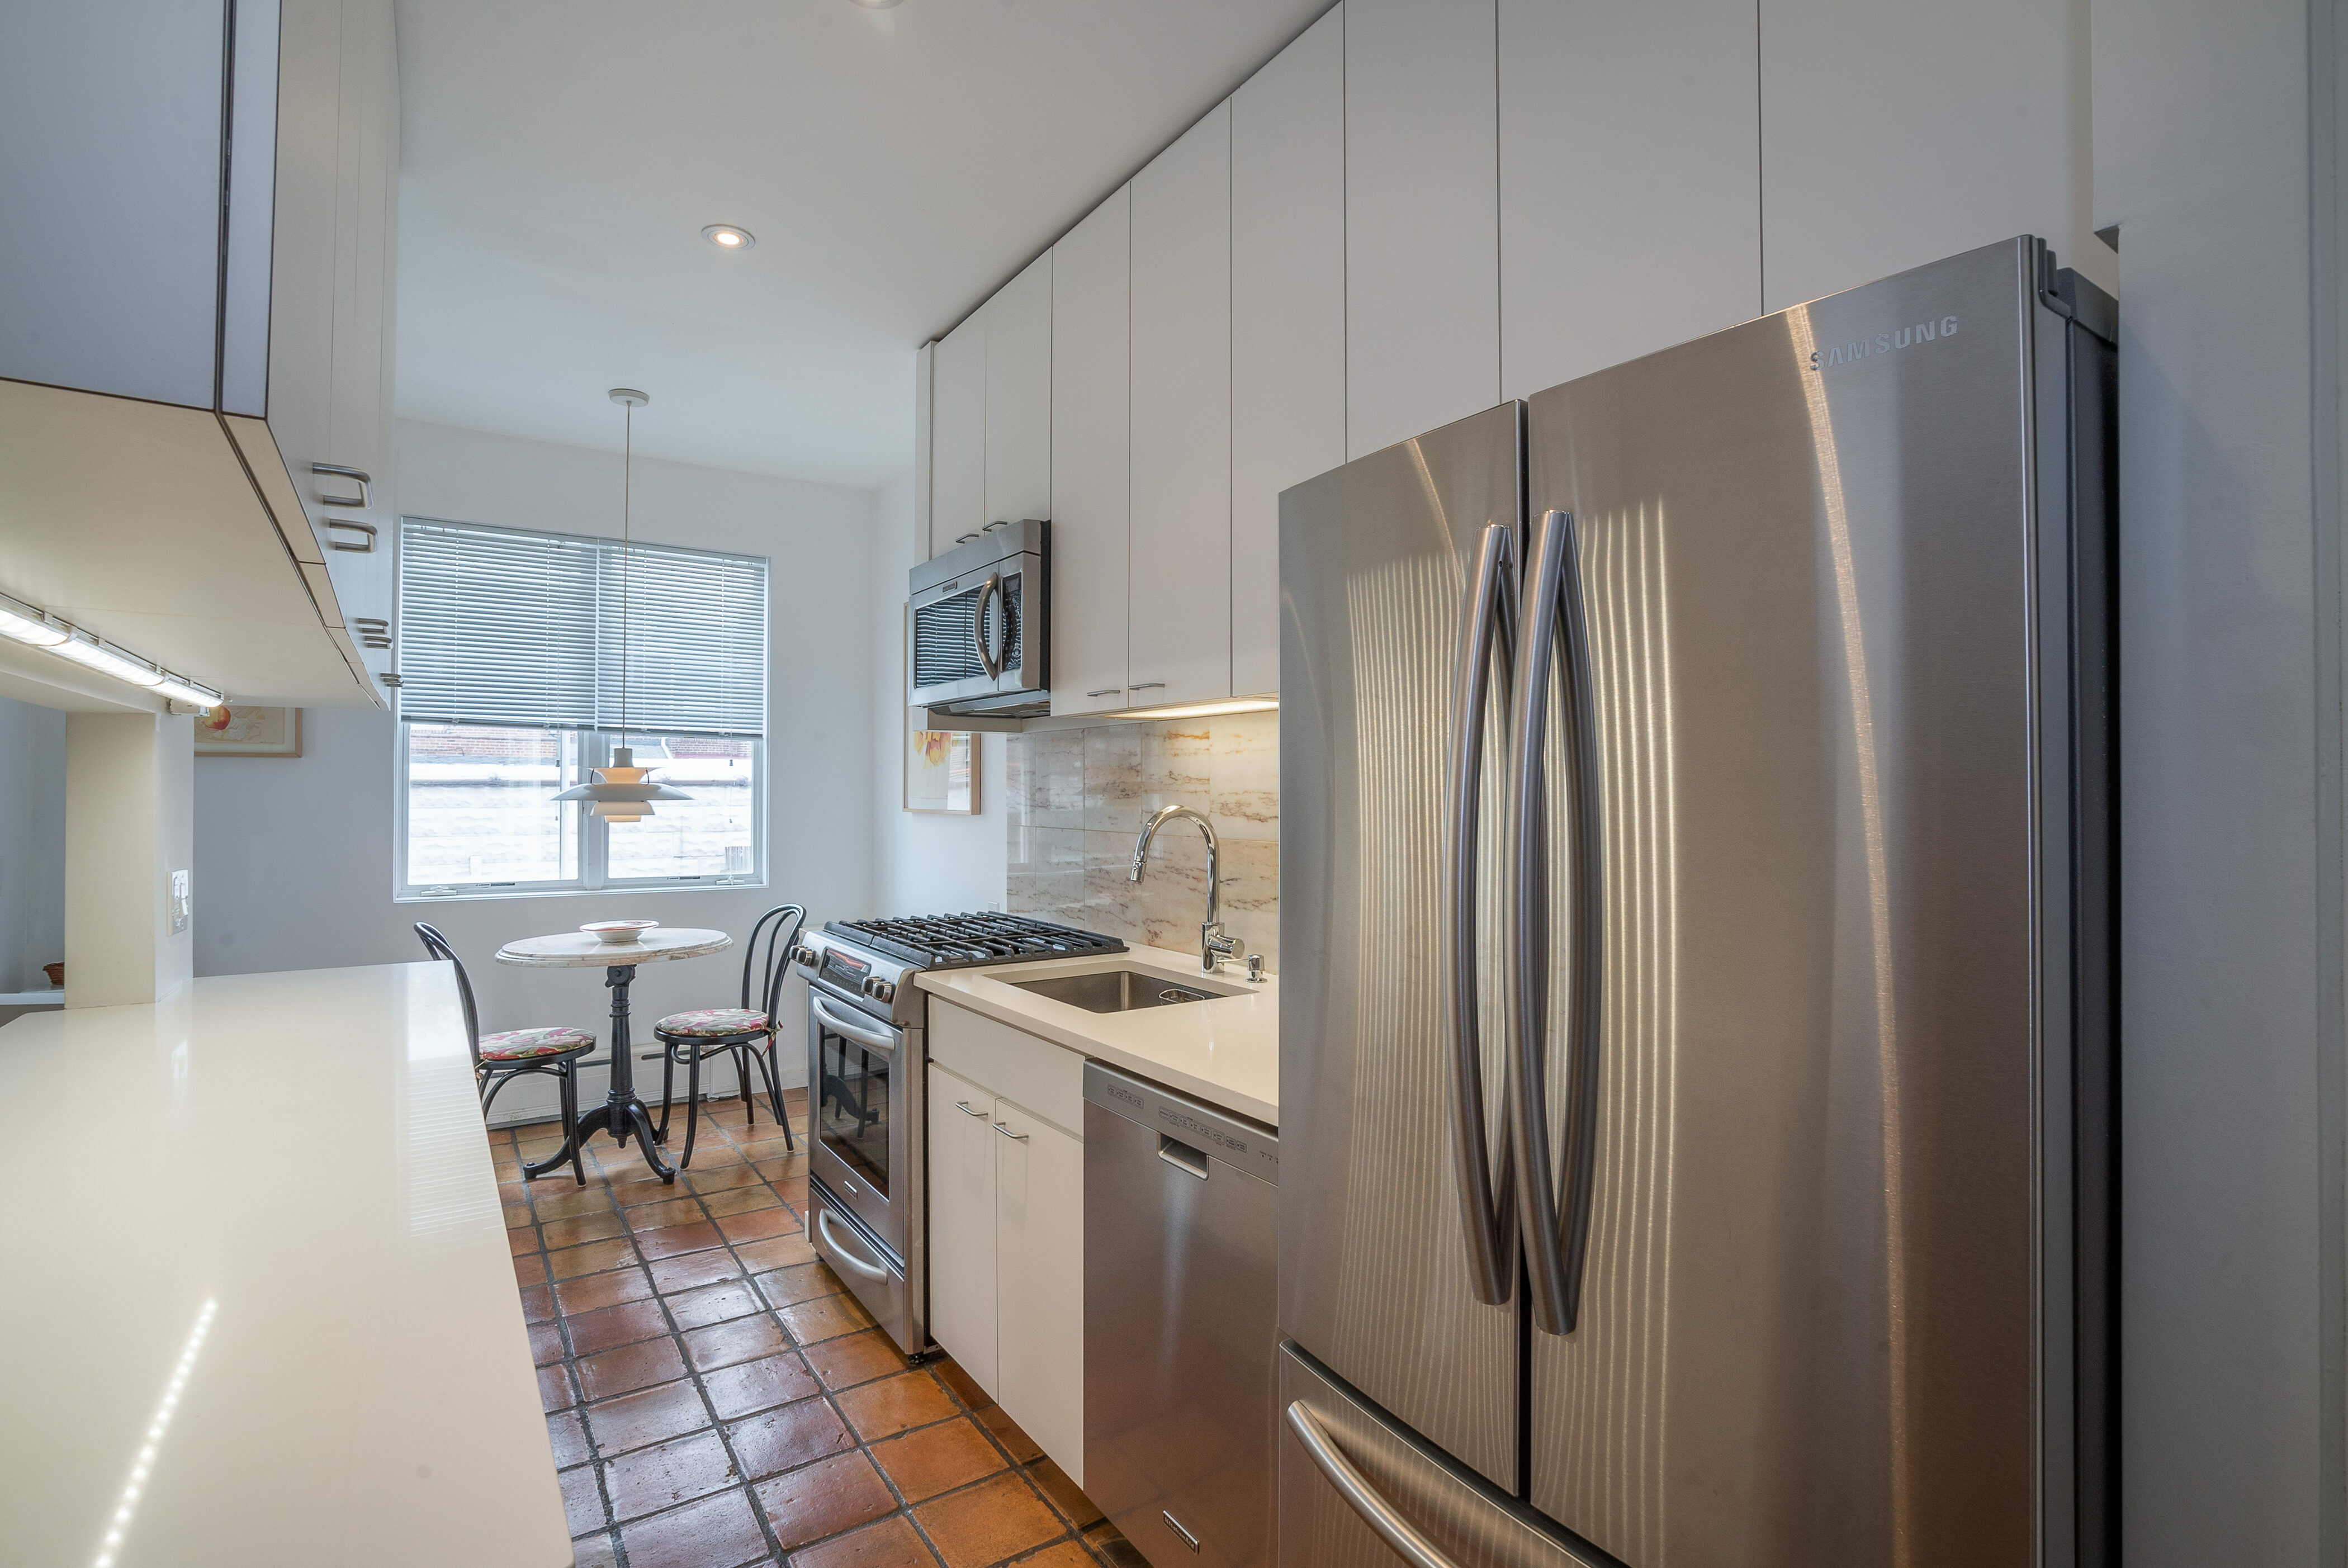 64-91 83rd Place Middle Village Queens NY 11379